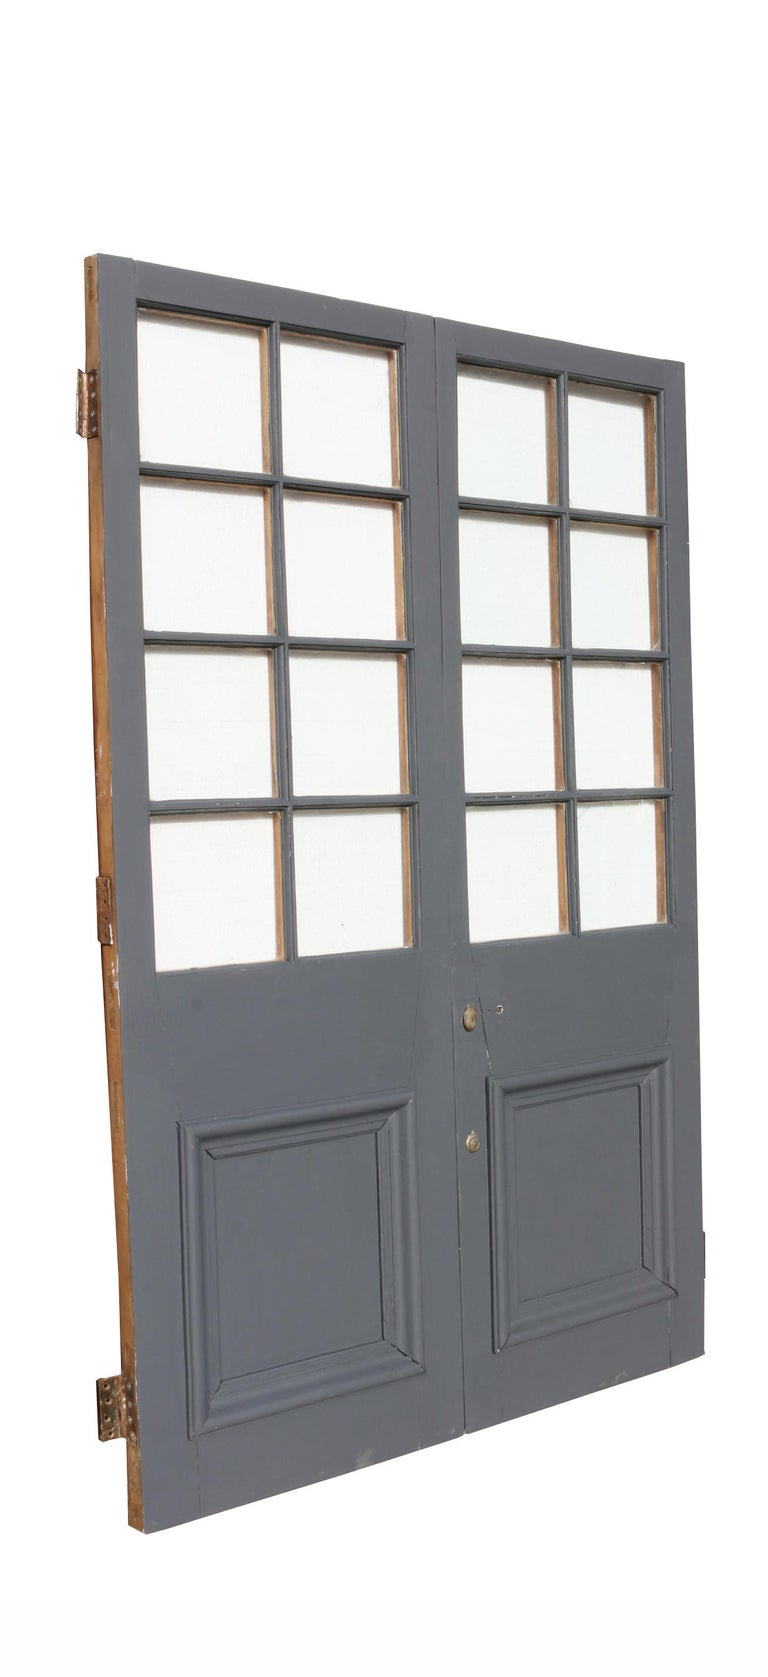 These doors have been painted on one side in a grey primer and feature single glazing. They are in good condition for their age, but do have four cracks to the glass.  Measures: Height 197.5 cm  Width 124.5 cm  Depth 5 cm  Weight 45 kg (for